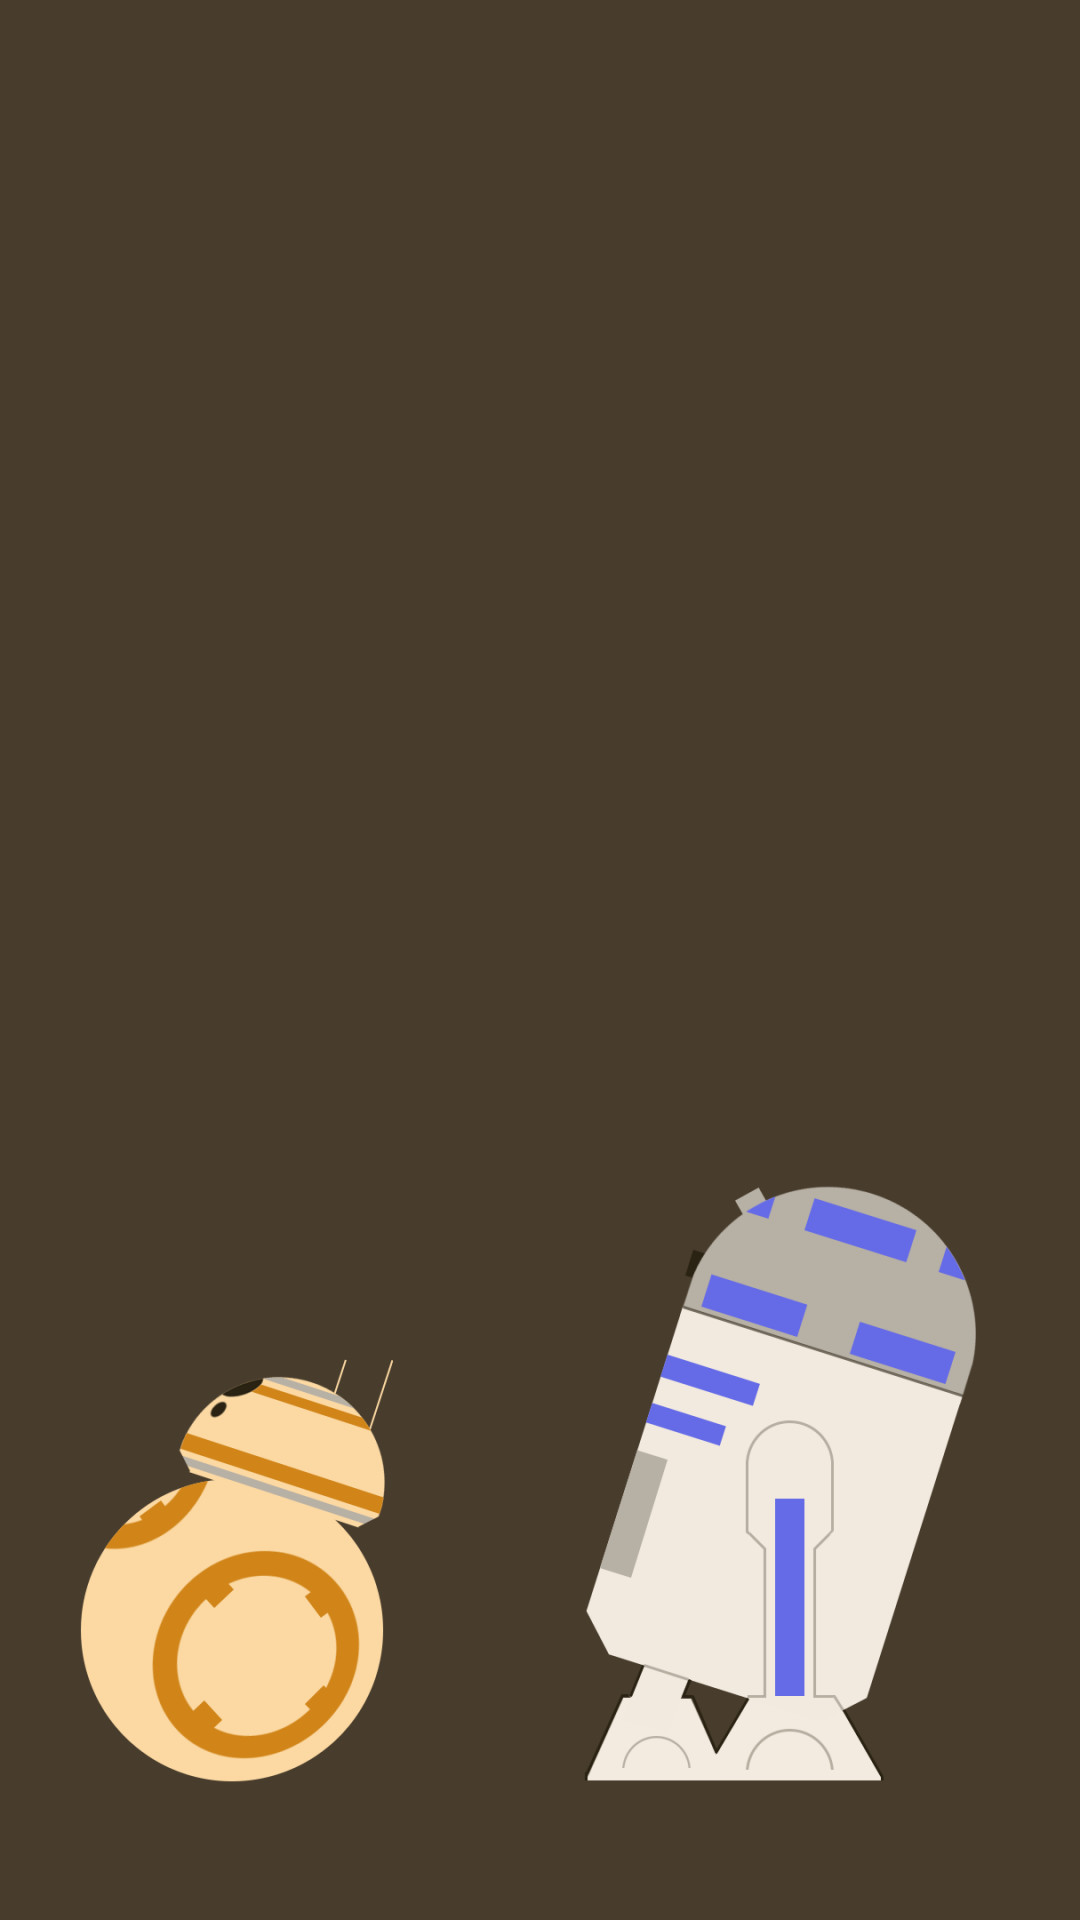 128 R2d2 Wallpaper Hd